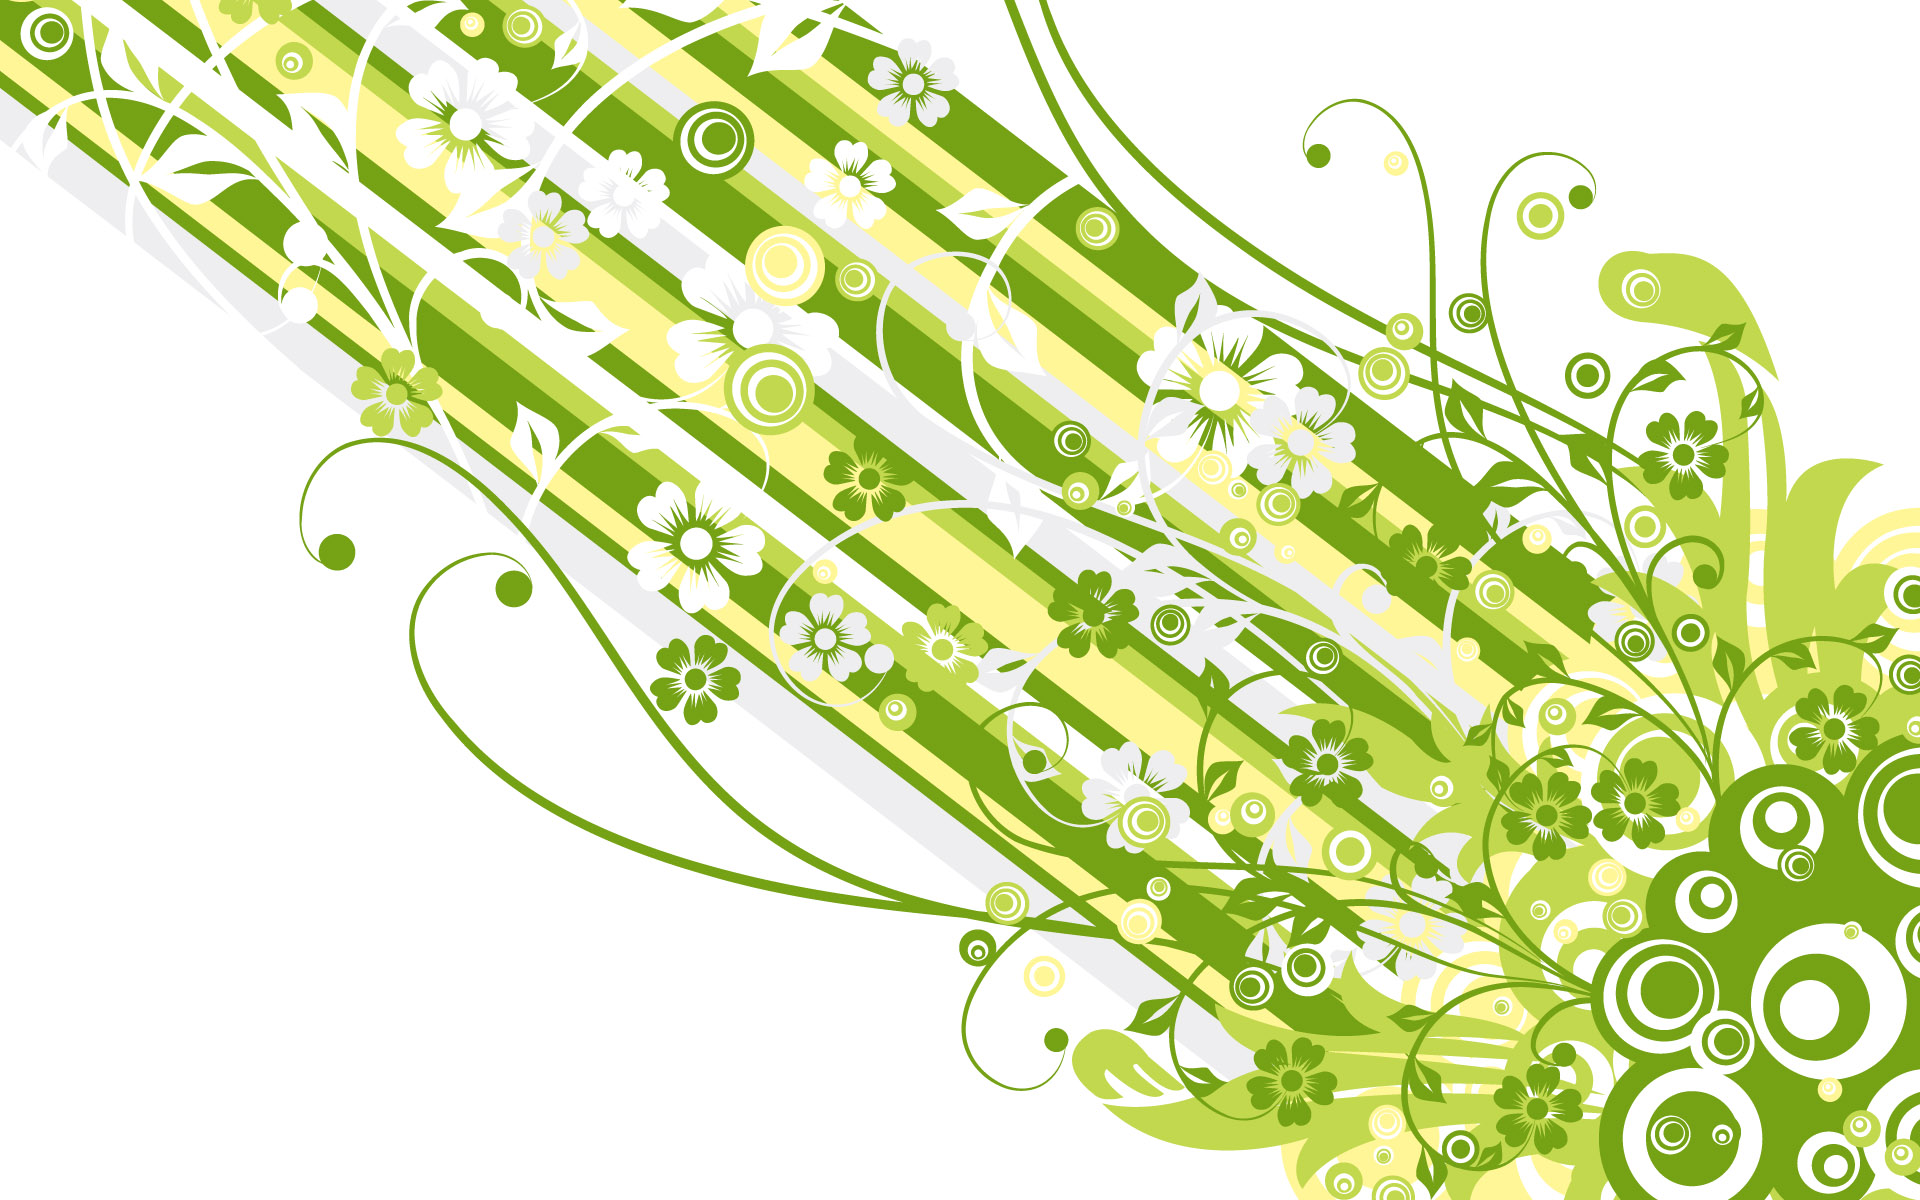 Green Vector Design 460.52 Kb